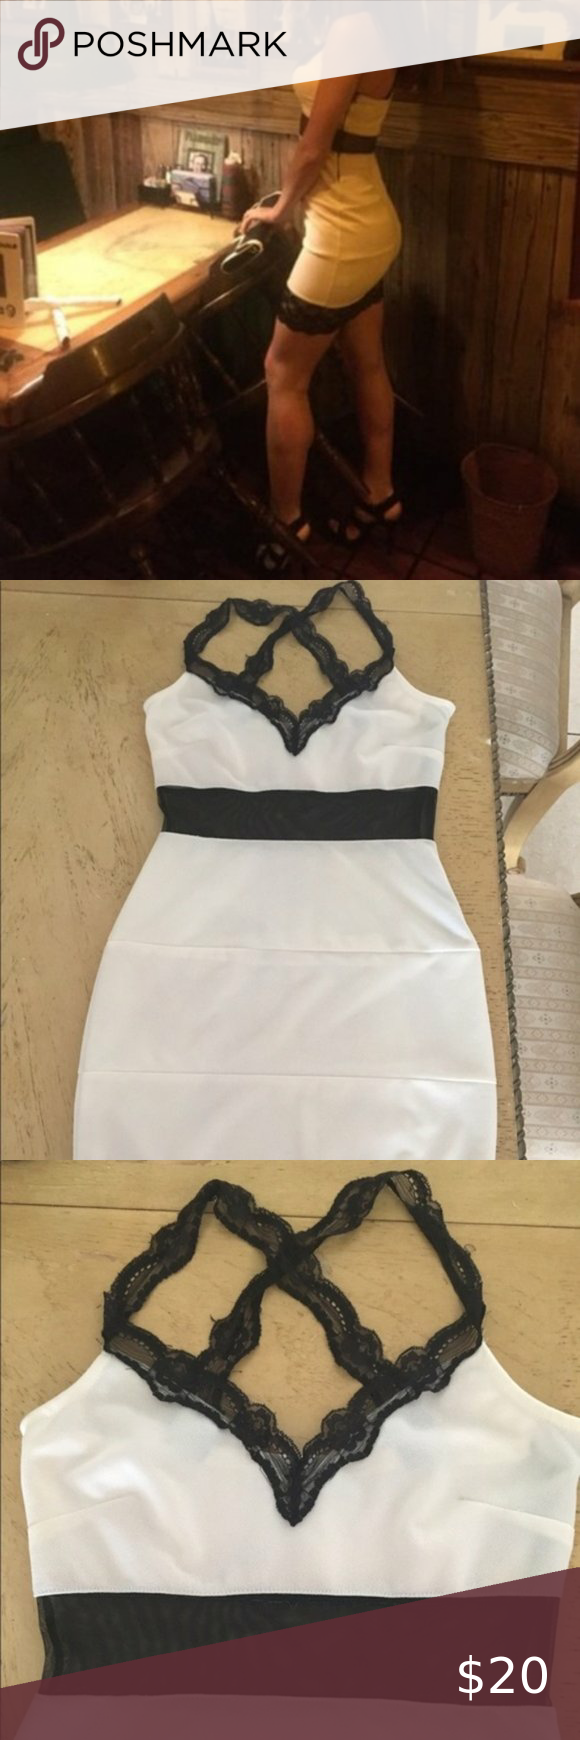 Bodycon Off White Dress With Black Lace S Stunning Bodycon Dress Stretchy With Criss Cross Lace At The Back As Well Off White Dresses White Dress Black Lace [ 1740 x 580 Pixel ]